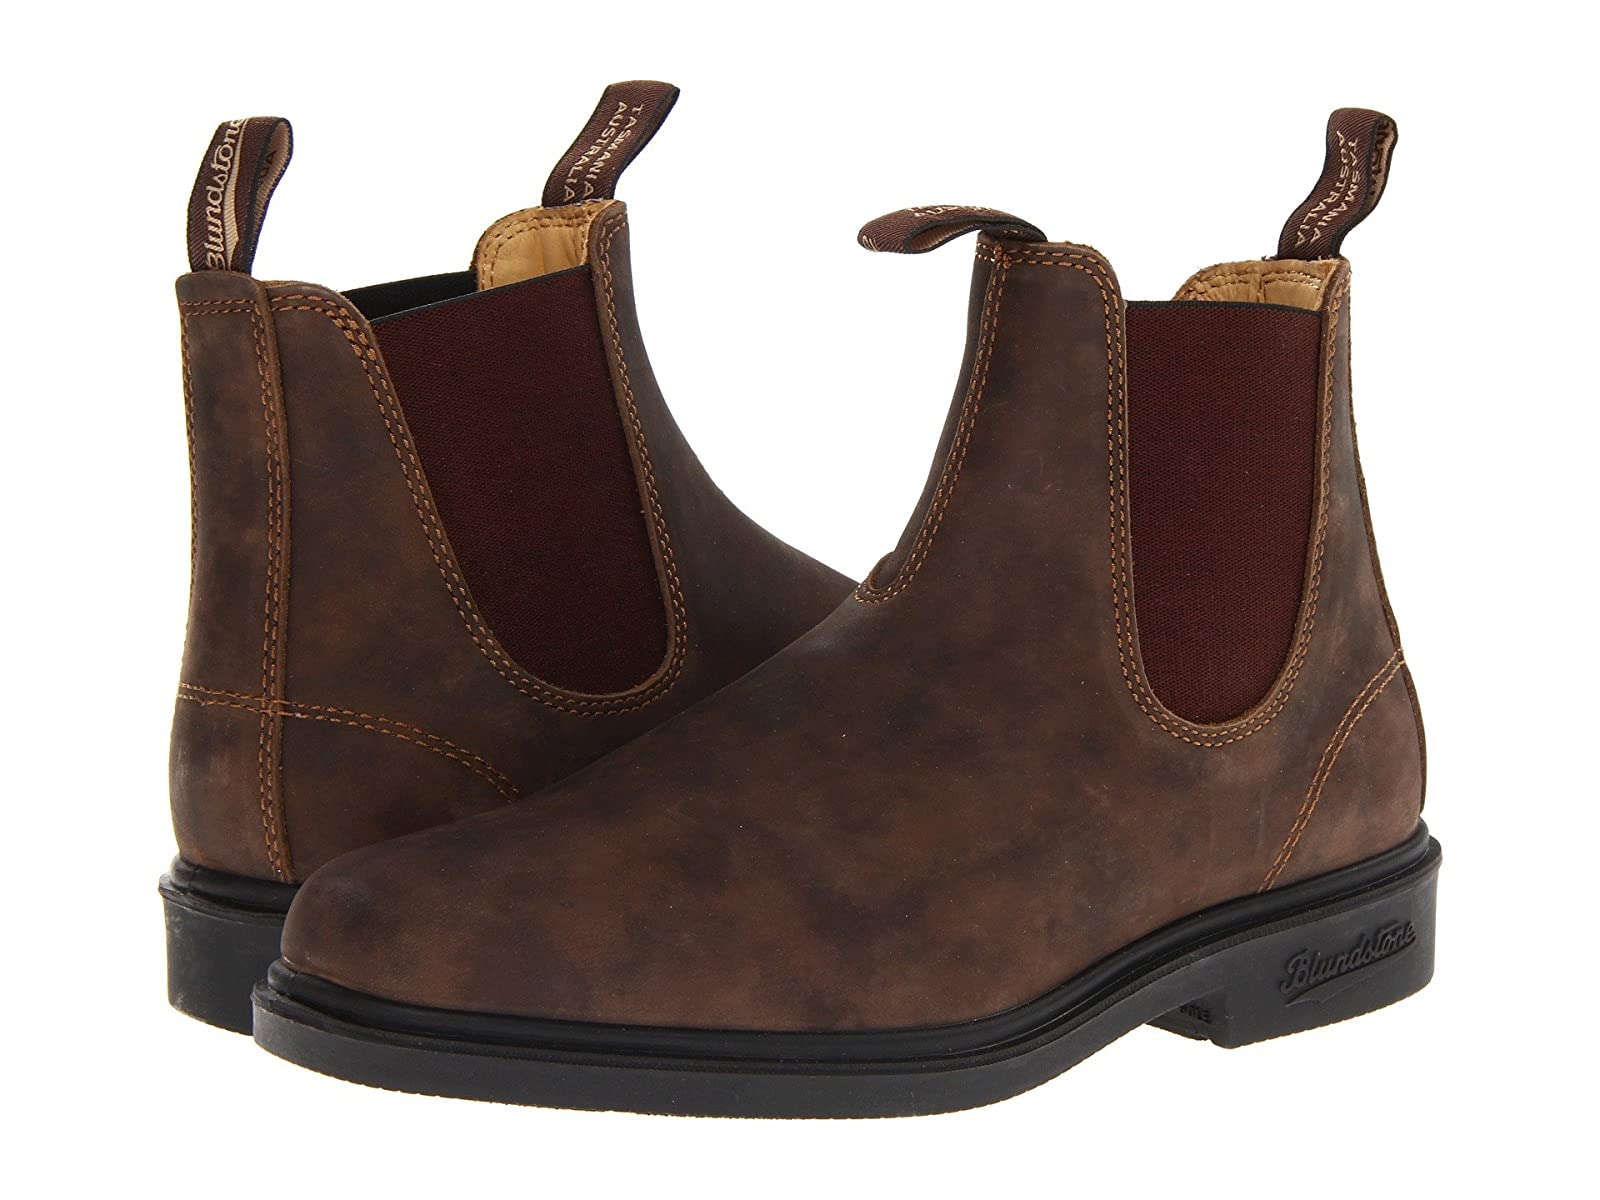 Blundstone BL1306Selling fashionable and eye-catching shoes